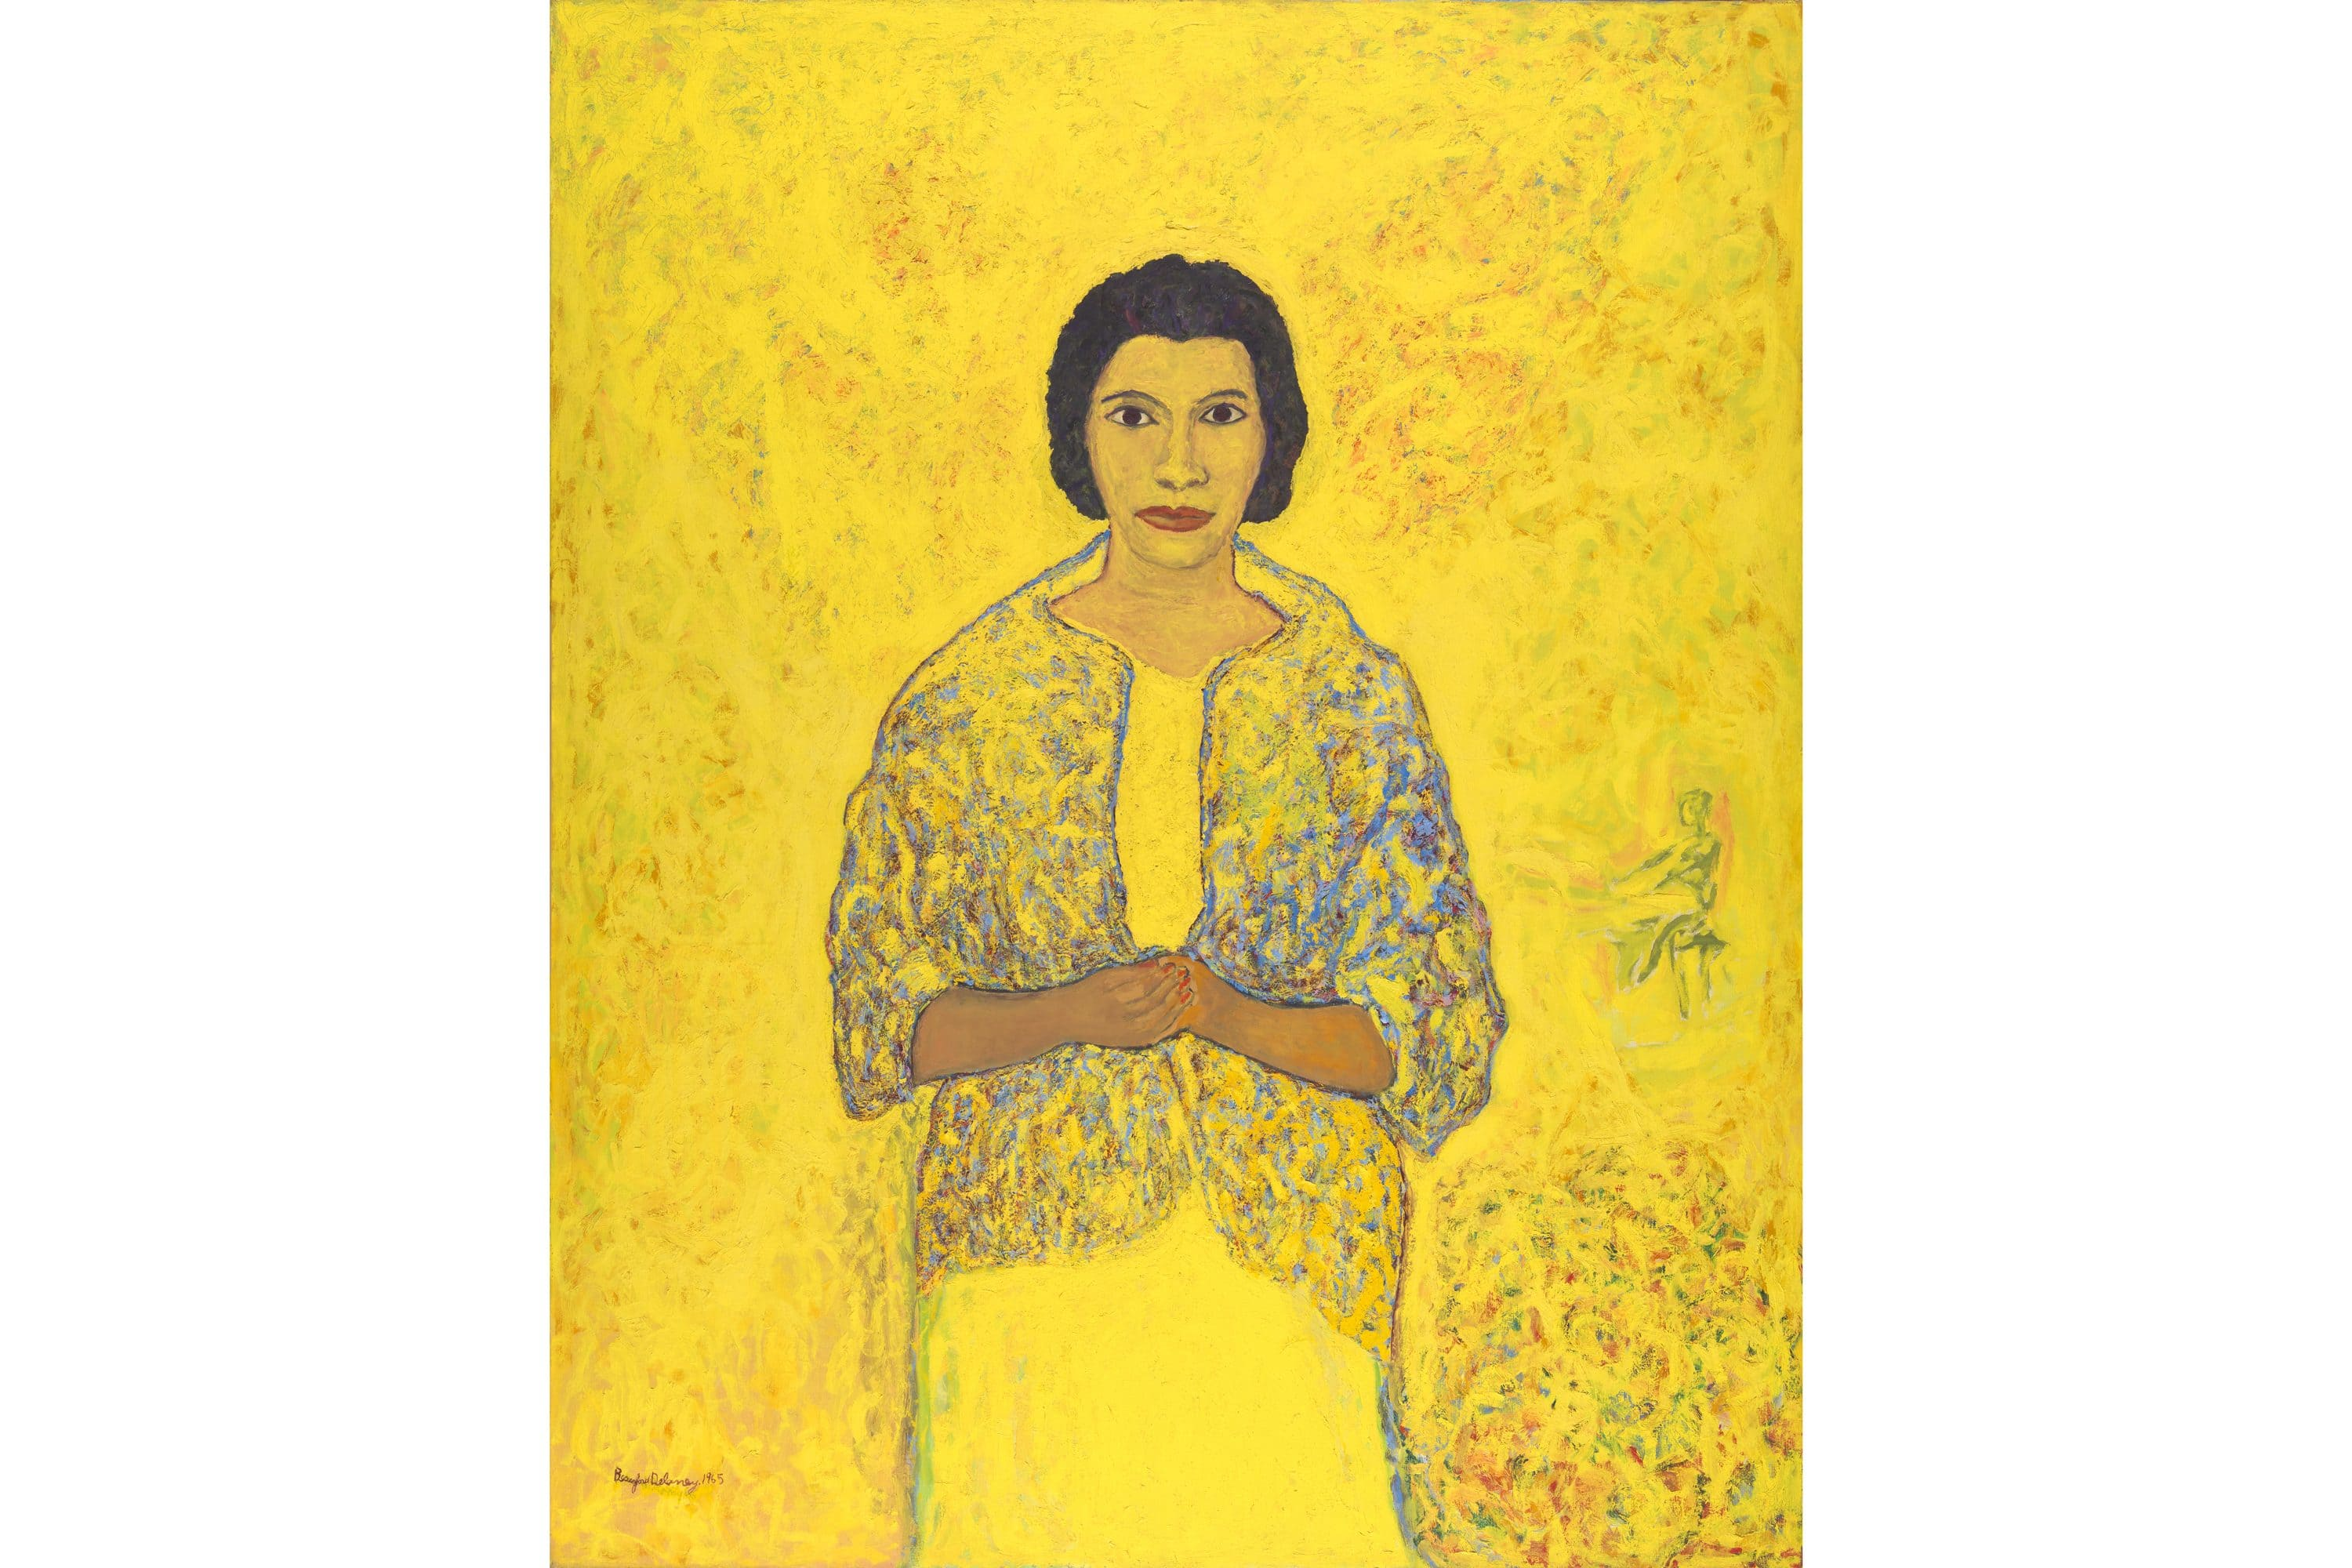 One Life: Marian Anderson at National Portrait Gallery